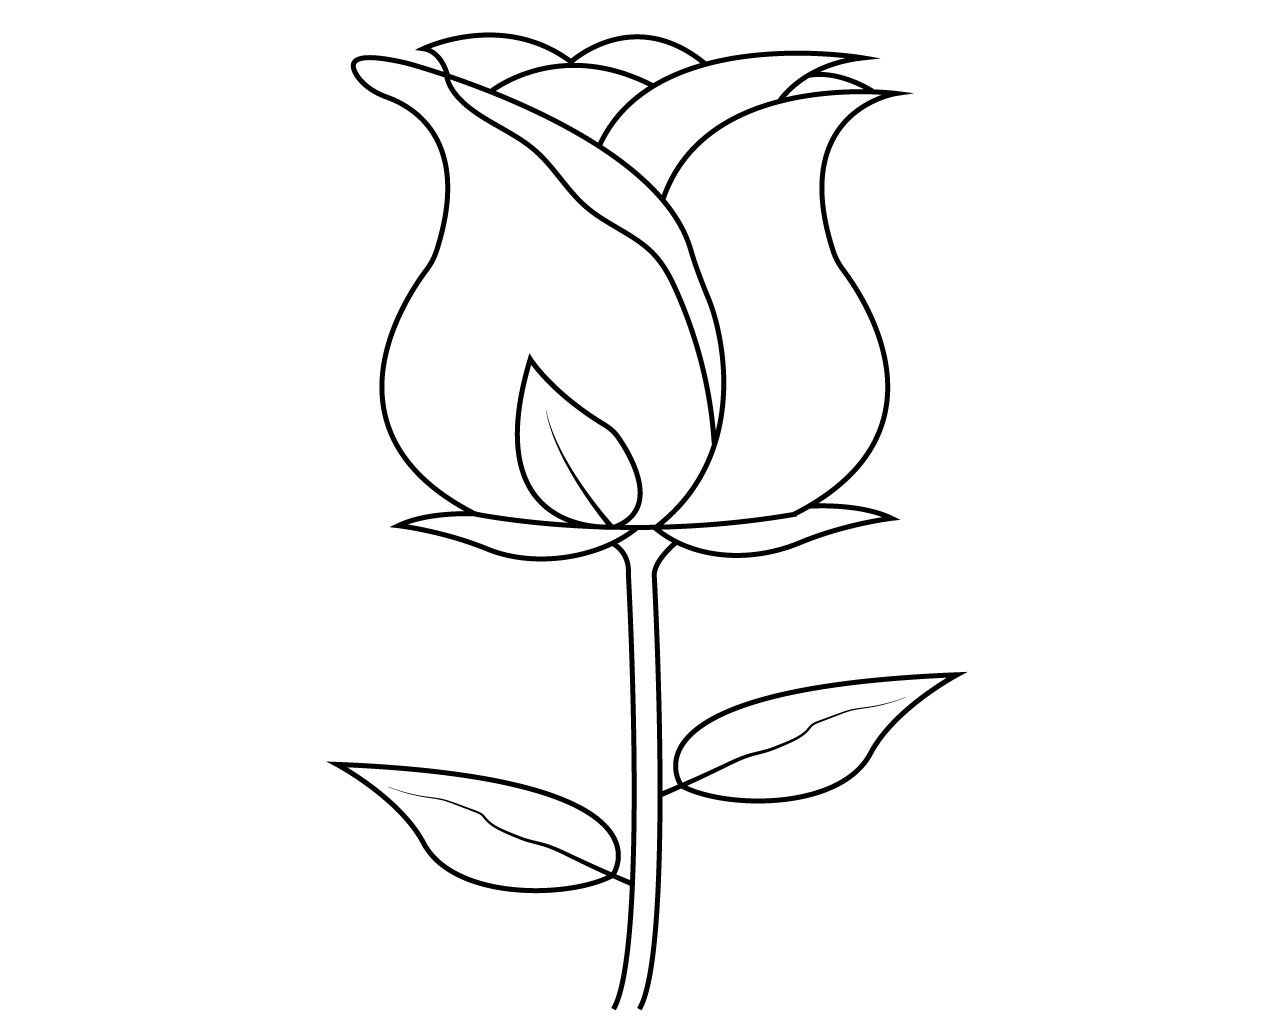 Simple Rose Flower Coloring Pages | Flower coloring pages ...